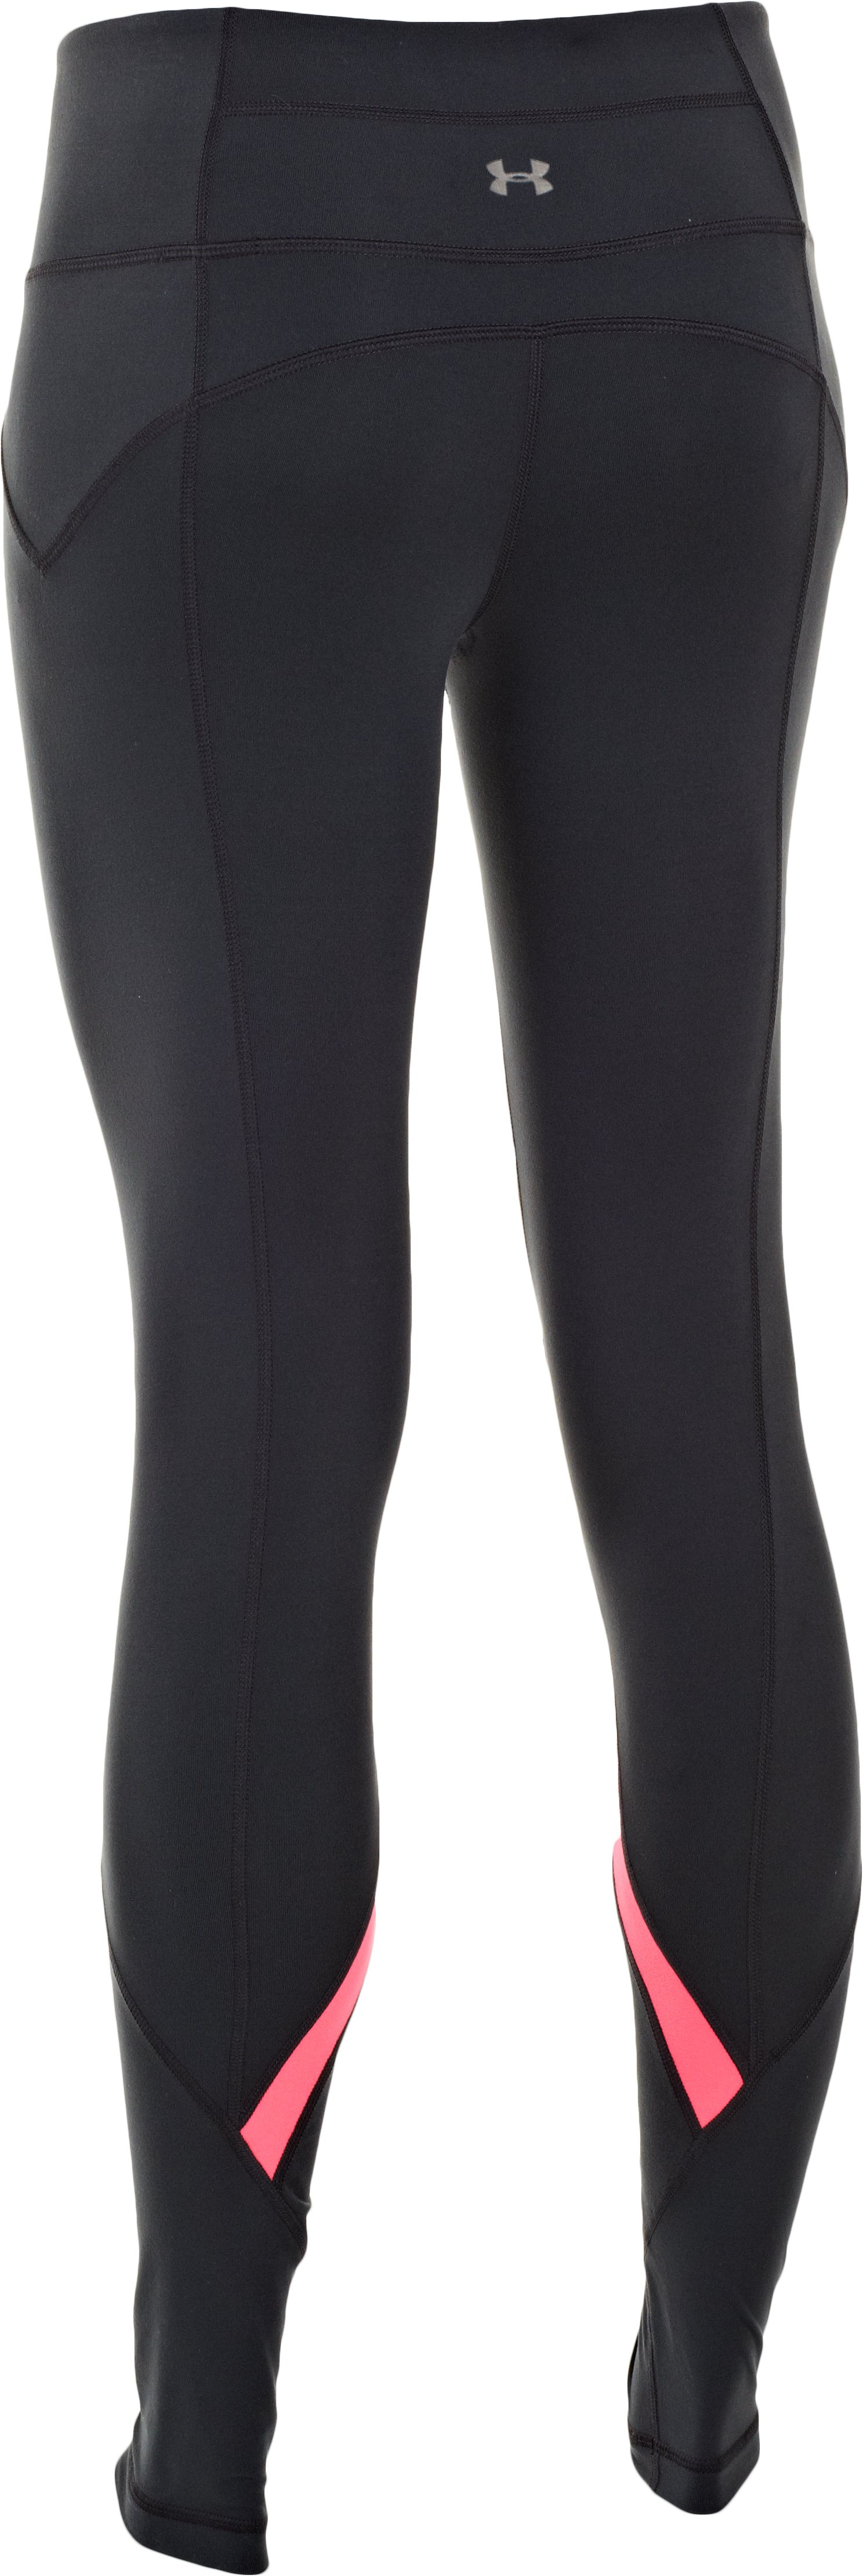 Women's UA Perfect Rave Legging, ANTHRACITE